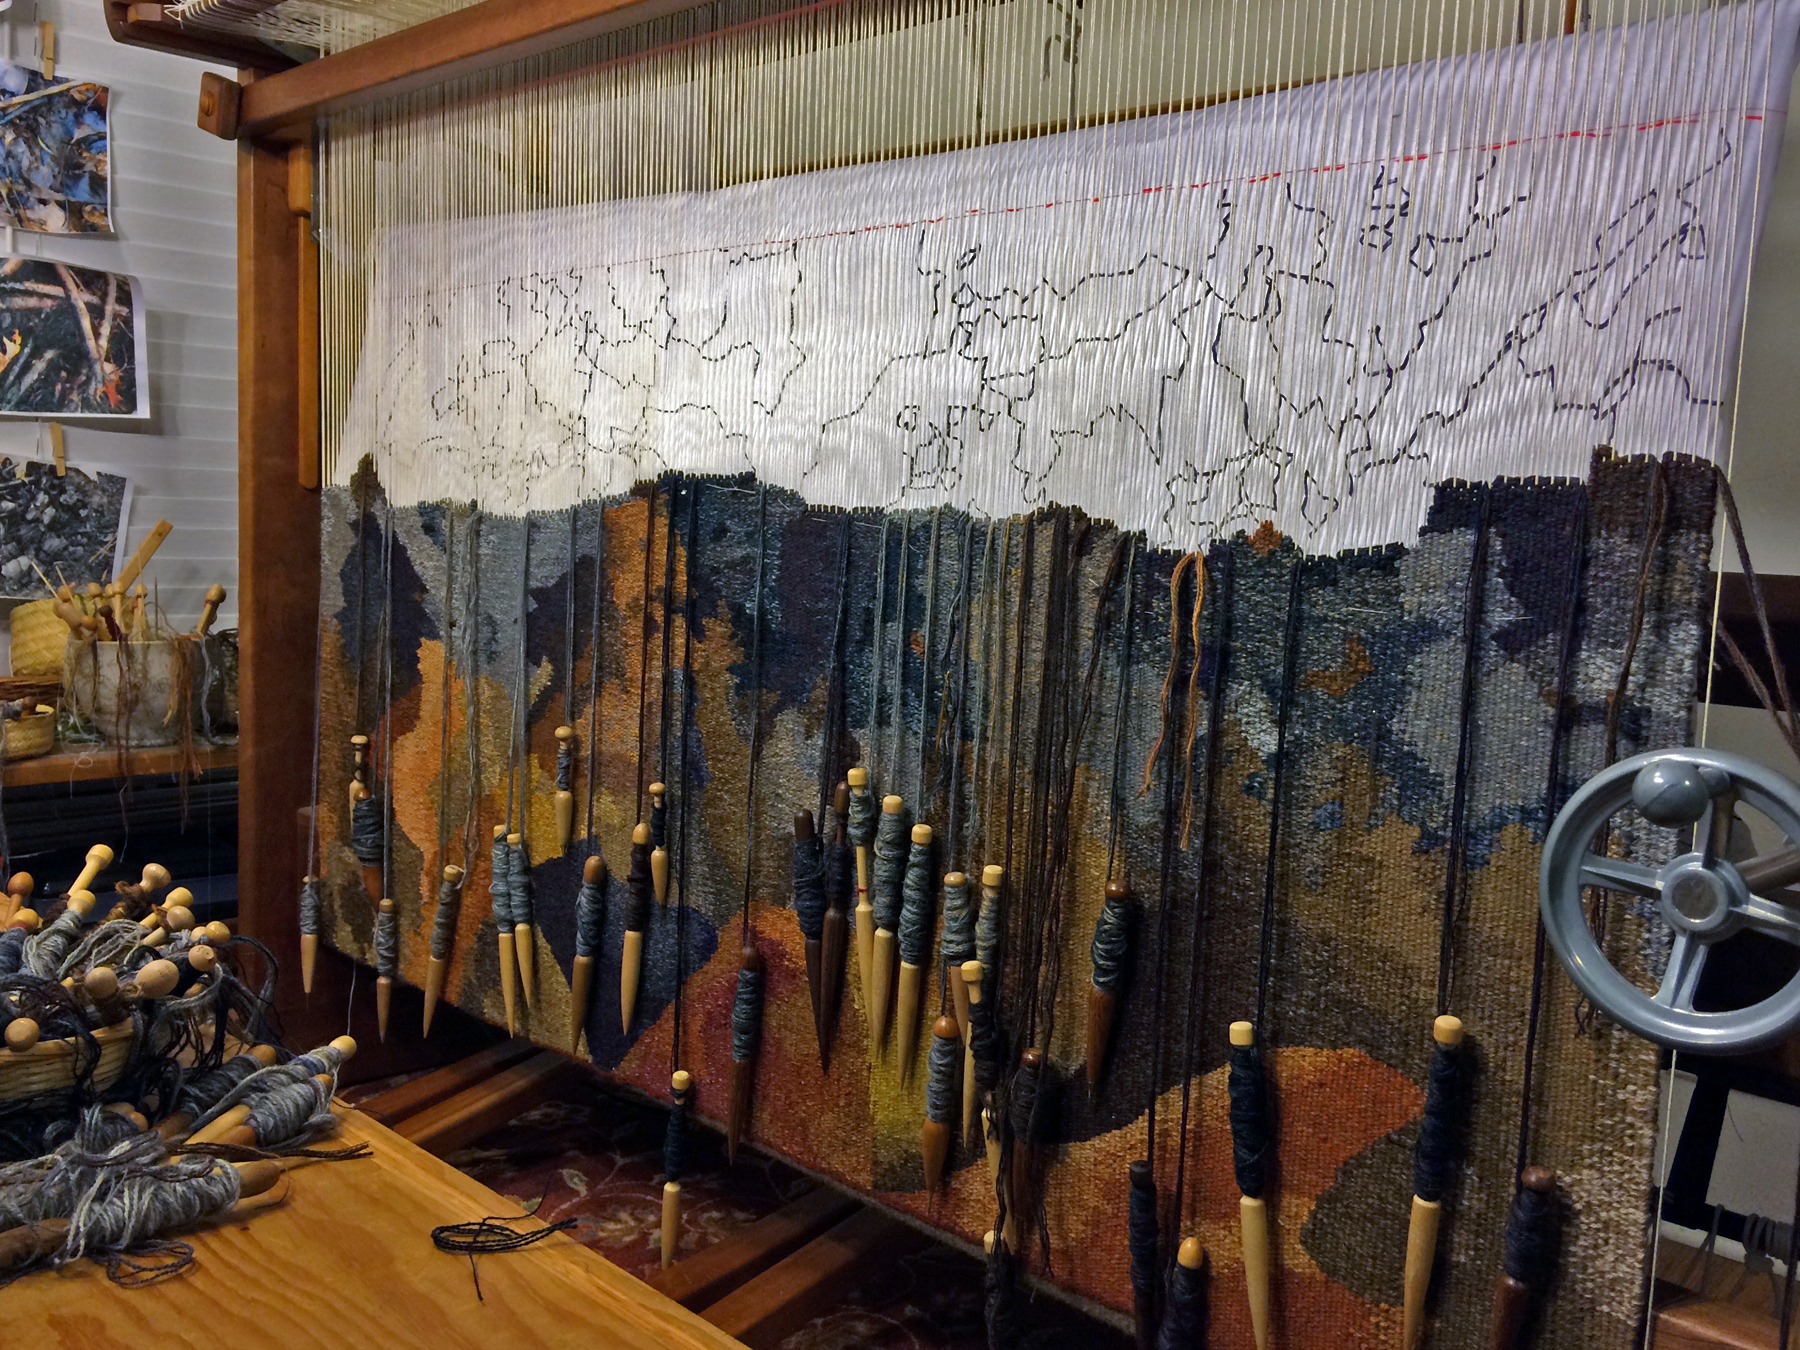 This tapestry is about the wildfires that swept through areas of the Southeast in the United States in late 2016.  Thousands of acres of wooded land were burned and at least fourteen people lost their lives.  Many more lost their homes and businesses in some of the most devastating of the fires in the Great Smoky Mountains of Tennessee.